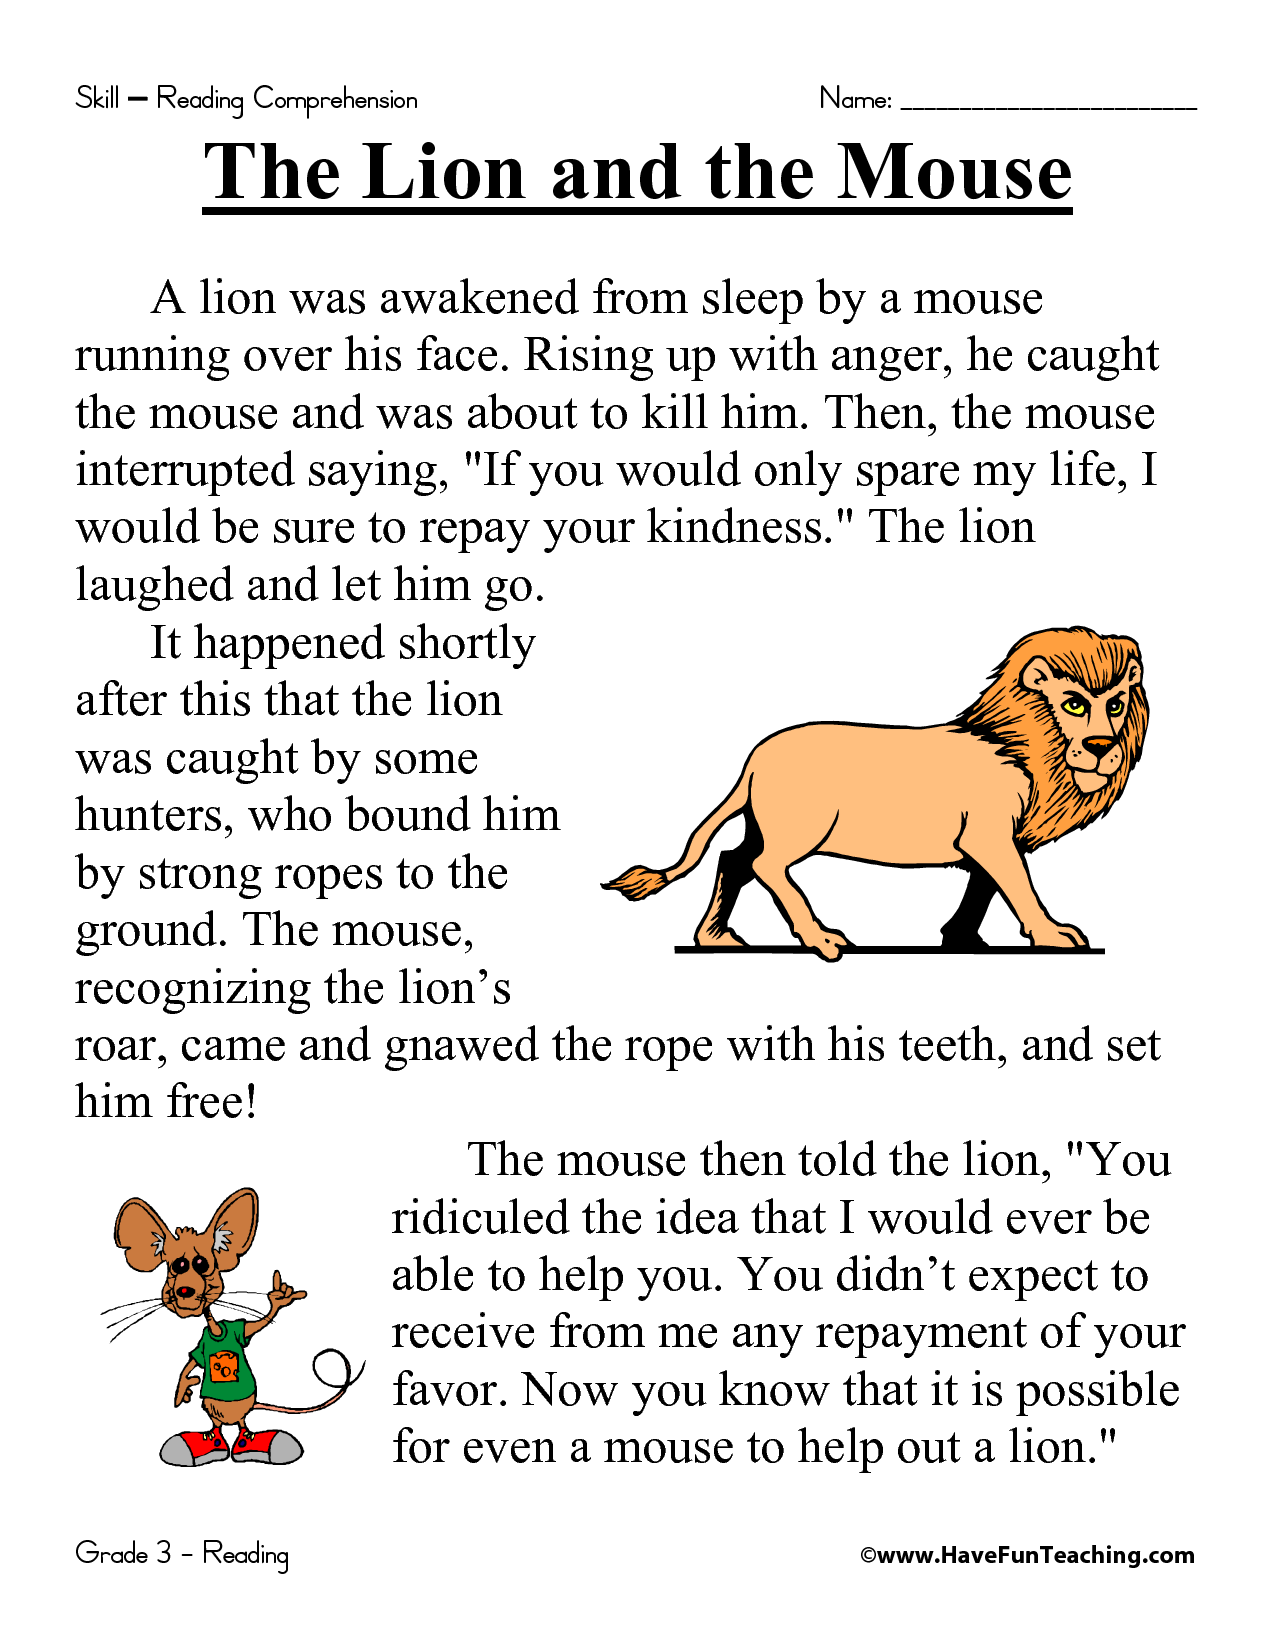 Worksheet Comprehension Tests Grade 3 first grade reading comprehension worksheets the lion and mouse worksheet